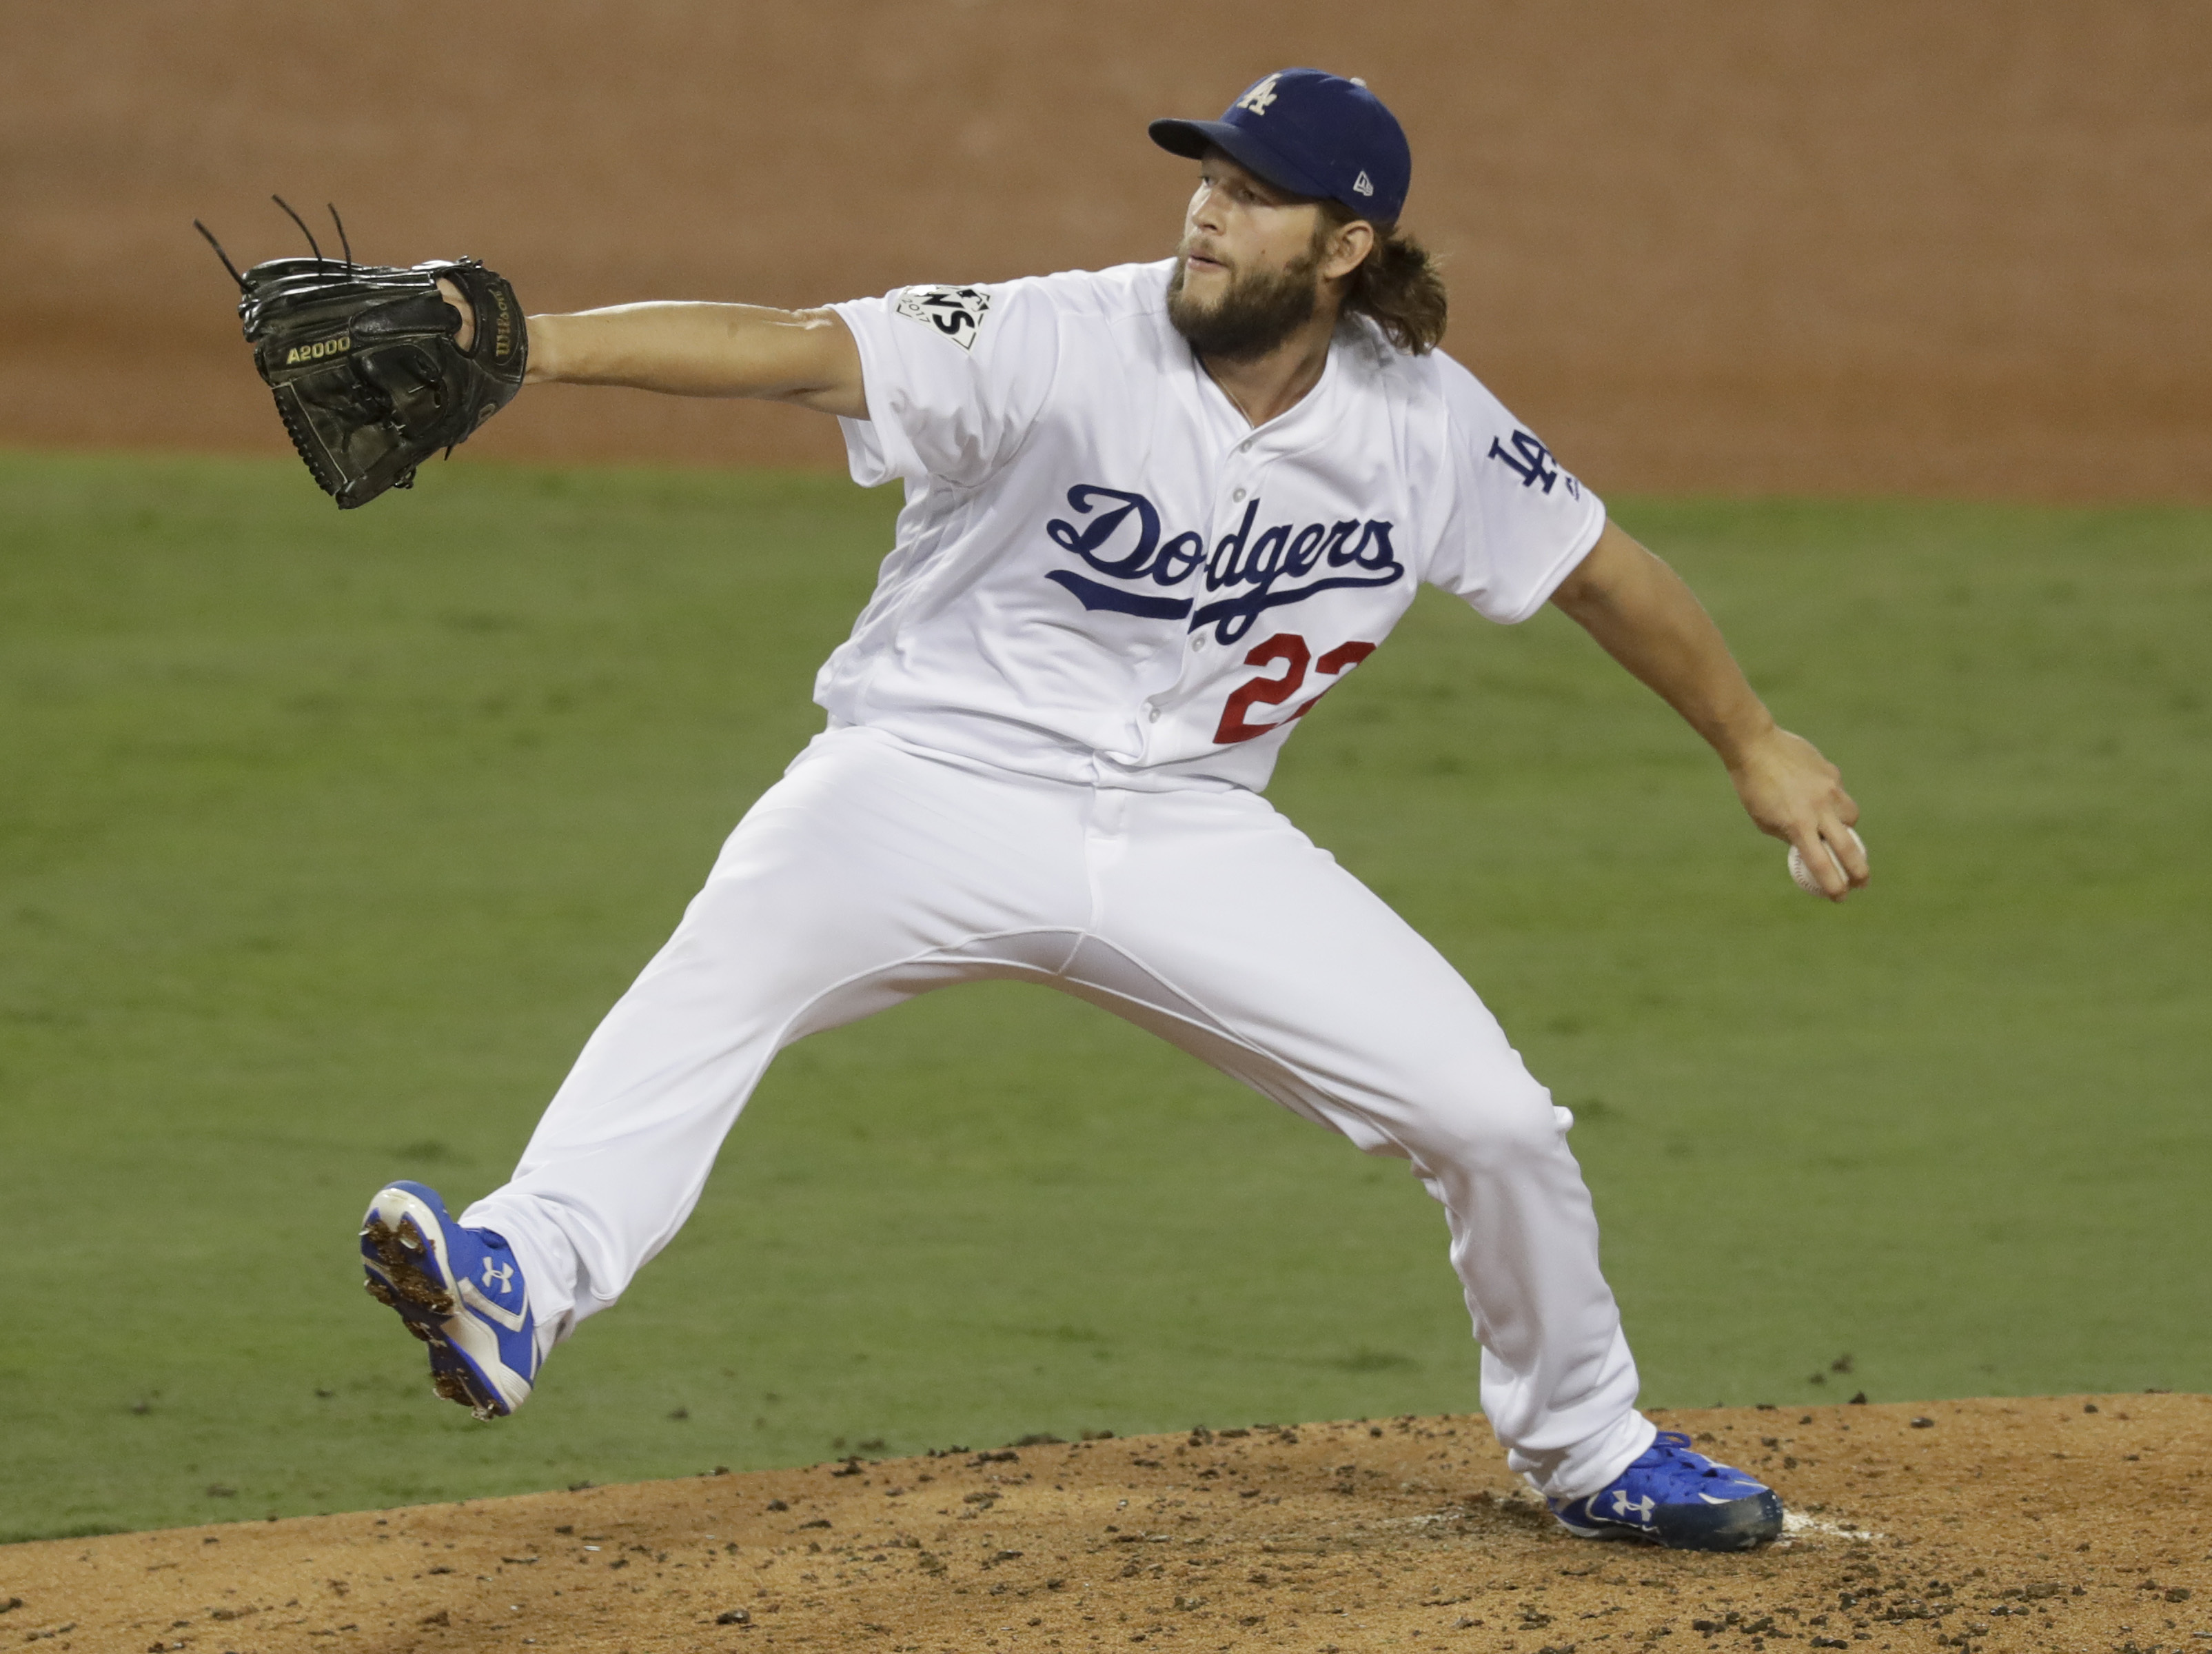 <div class='meta'><div class='origin-logo' data-origin='AP'></div><span class='caption-text' data-credit='(AP Photo/Alex Gallardo)'>Los Angeles Dodgers starting pitcher Clayton Kershaw throws against the Houston Astros during the third inning of Game 7 of baseball's World Series Wednesday, Nov. 1, 2017.</span></div>